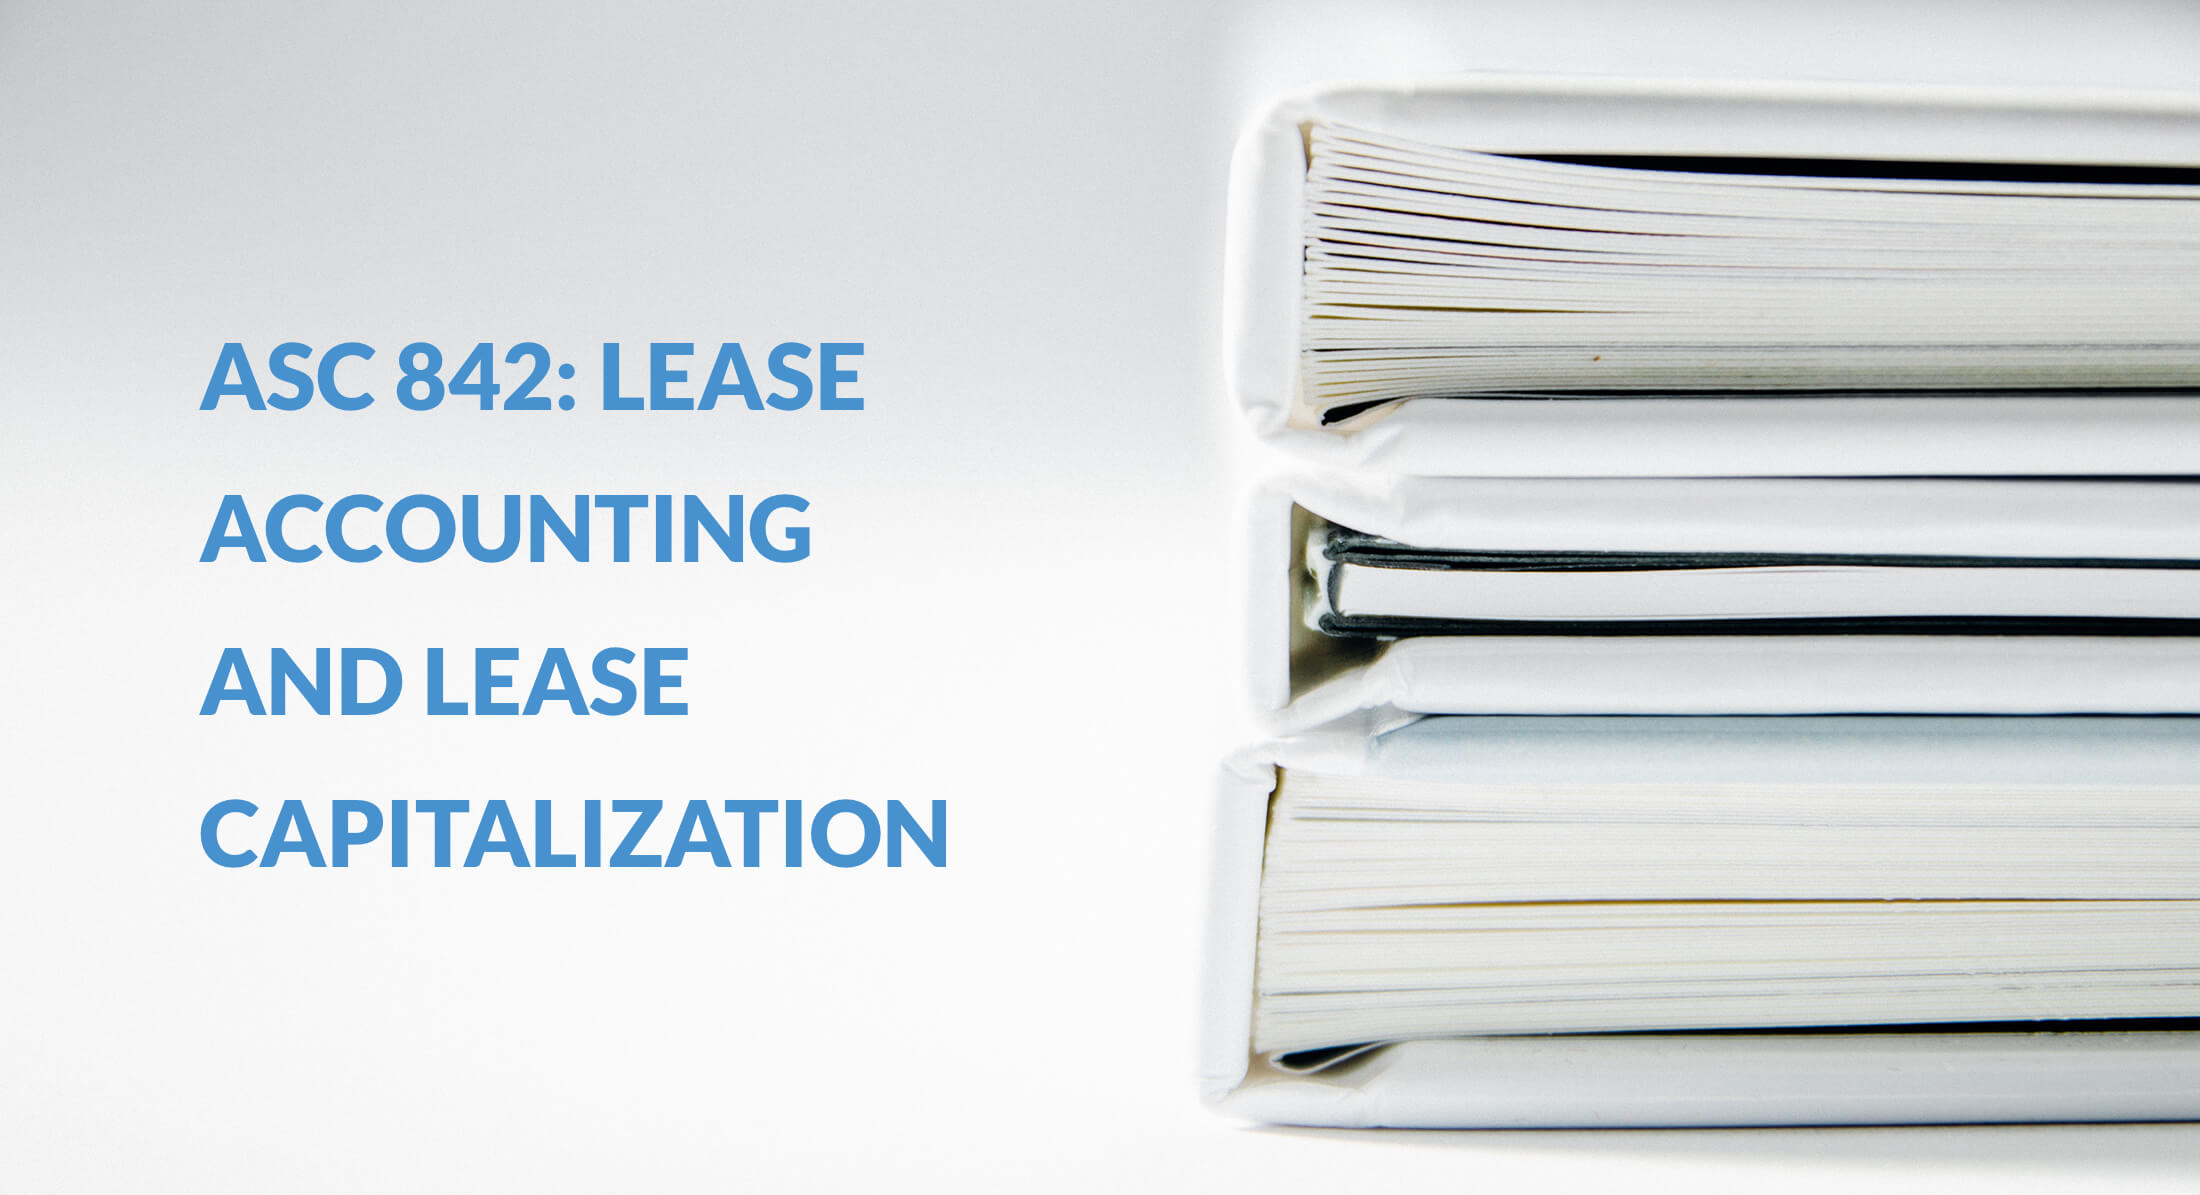 ASC 842: Lease Accounting and Lease Capitalization